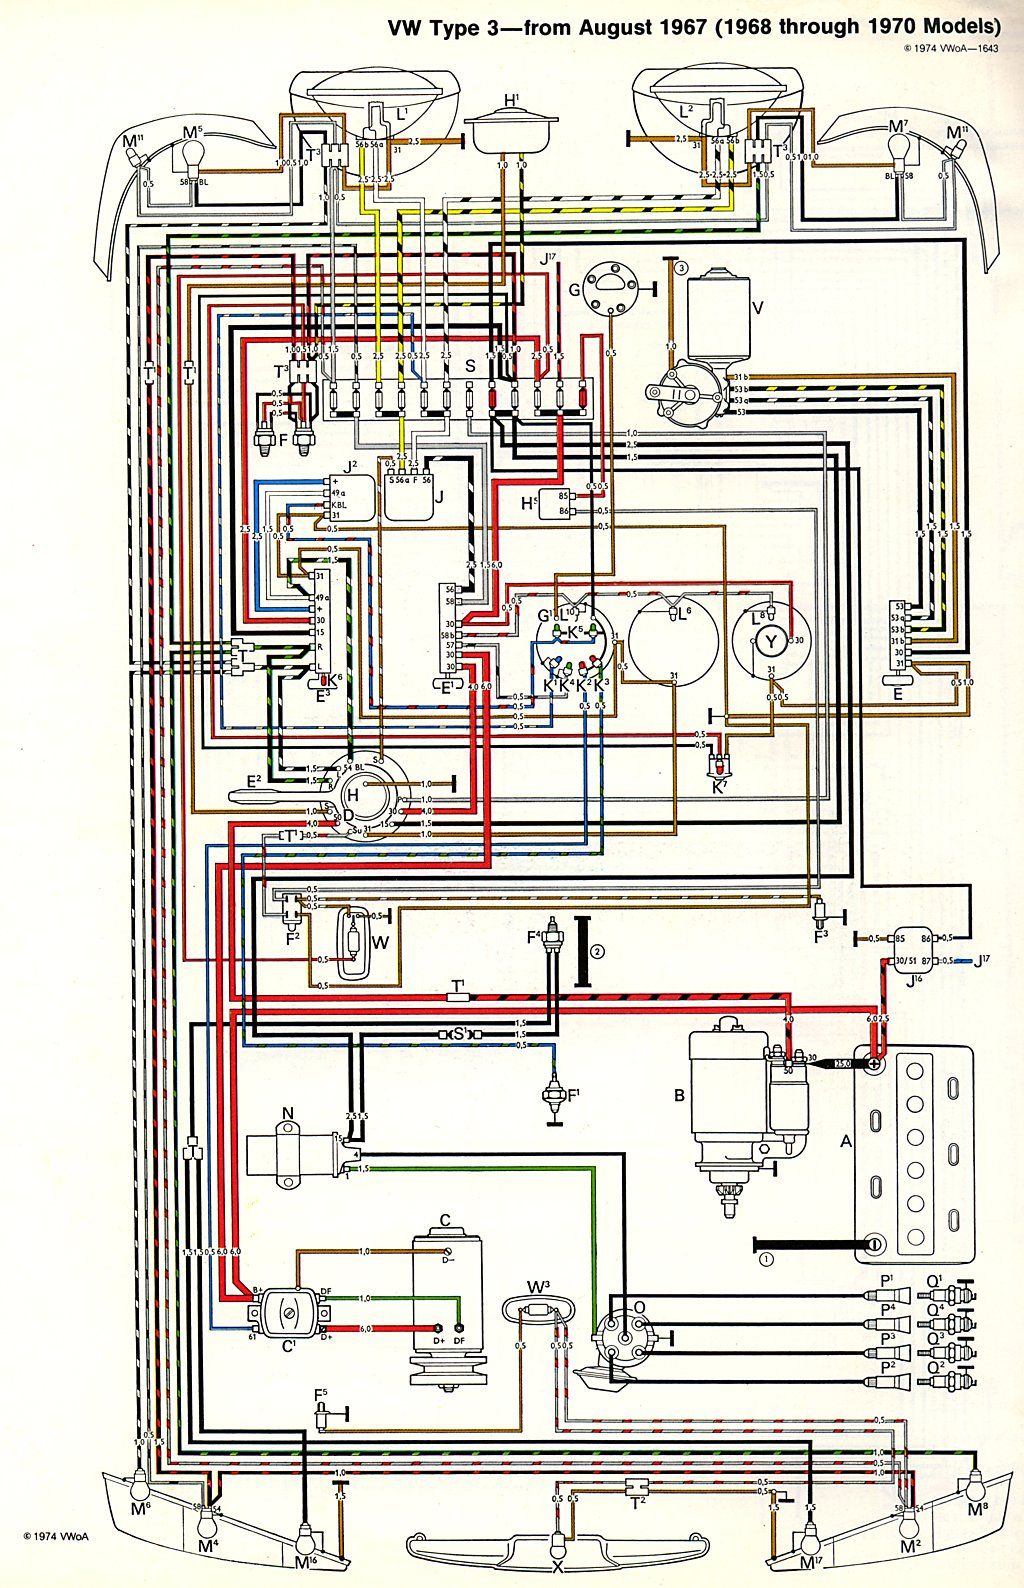 68 vw wiring harness 68 printable wiring diagram database thesamba com type 3 wiring diagrams source